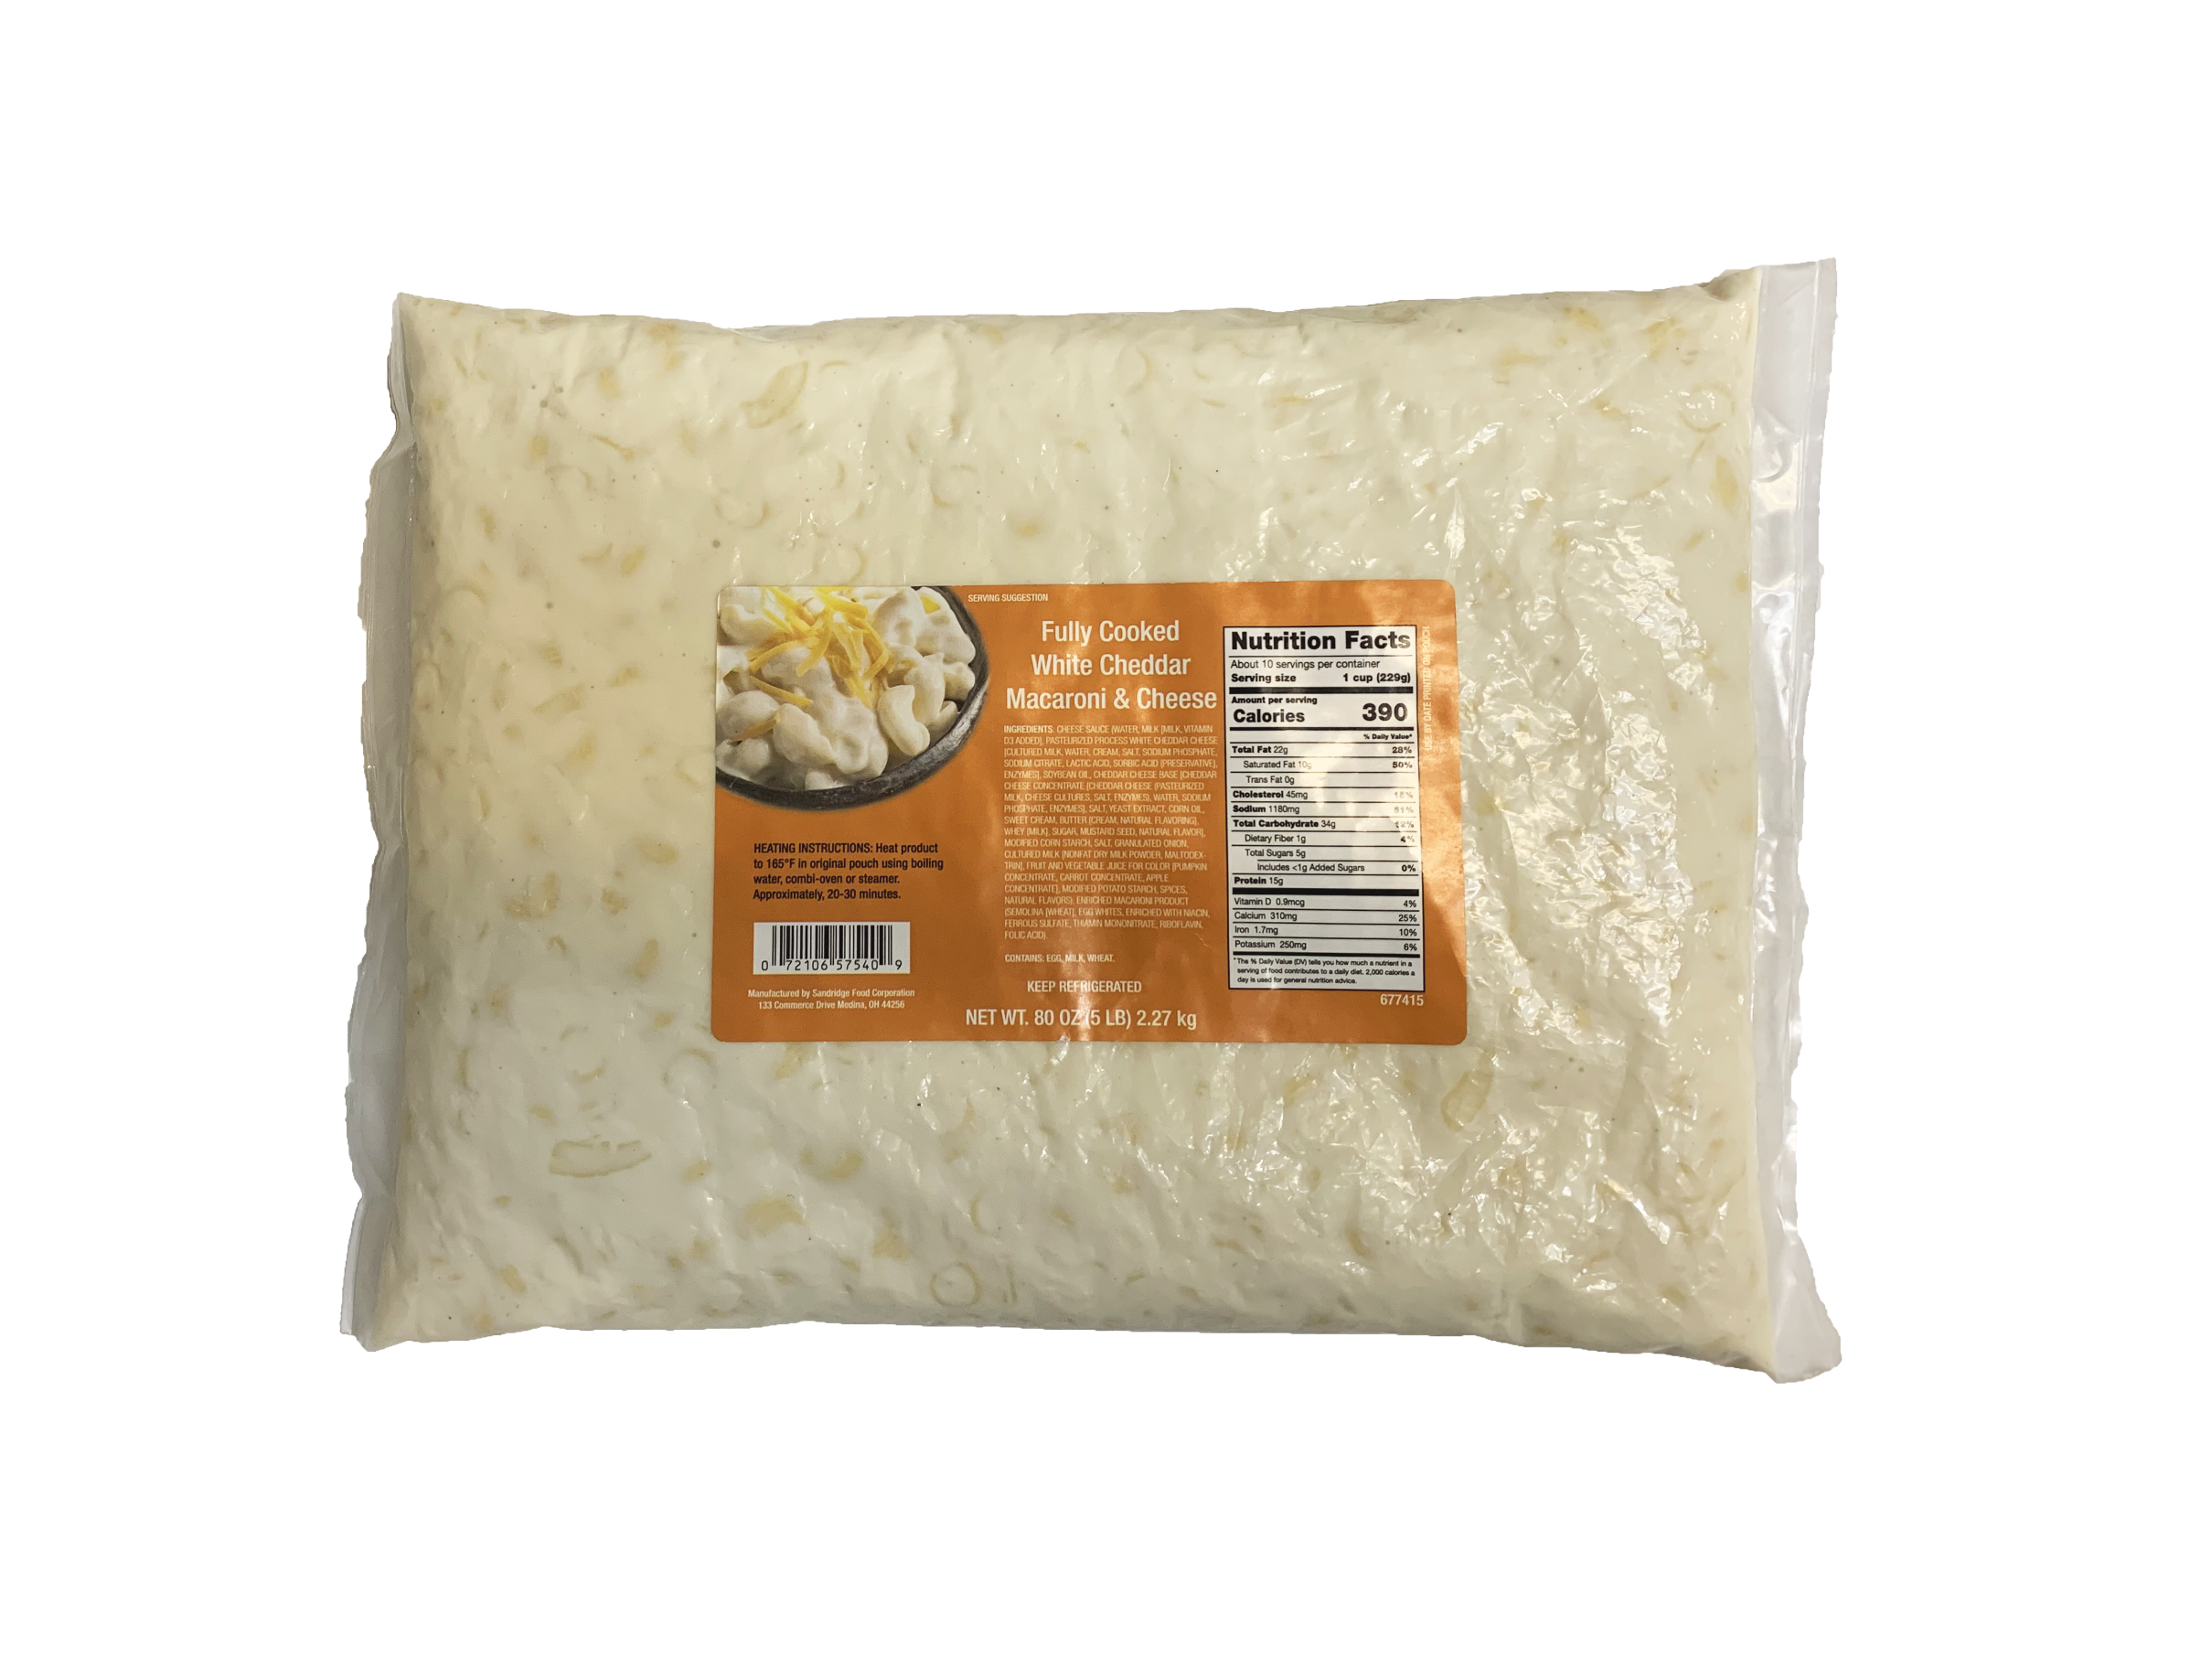 White Cheddar Macaroni & Cheese with Labels